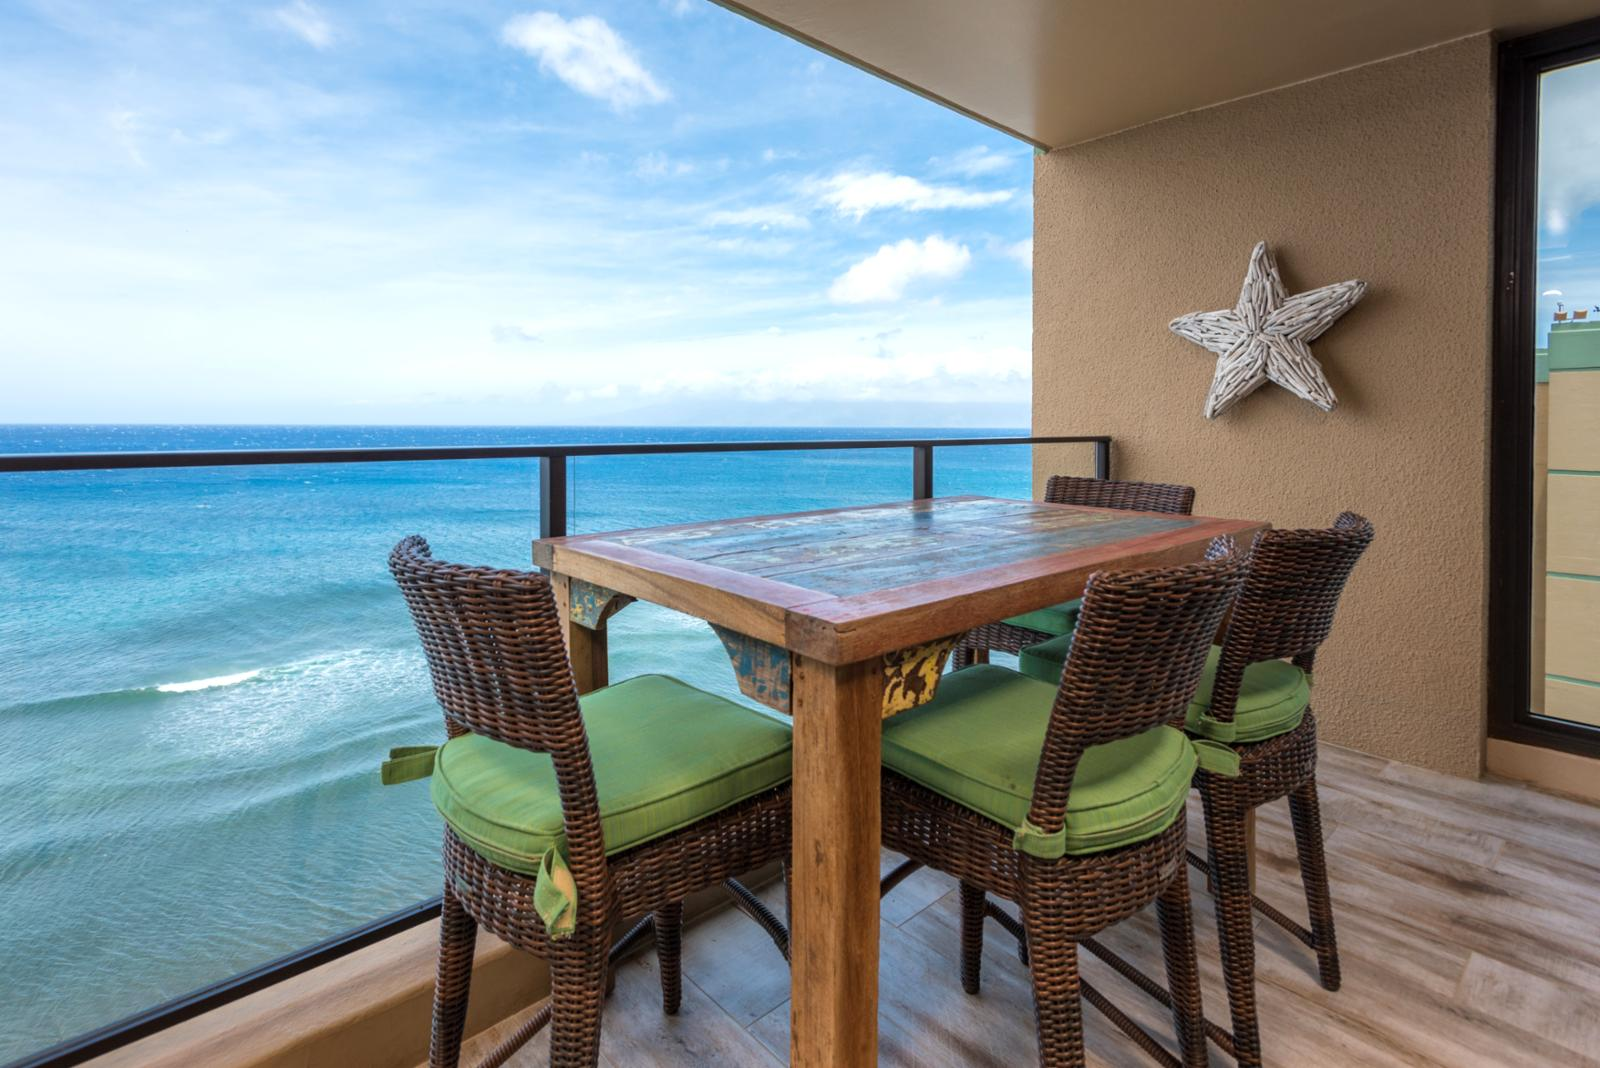 Outdoor seating - oceanfront sounds